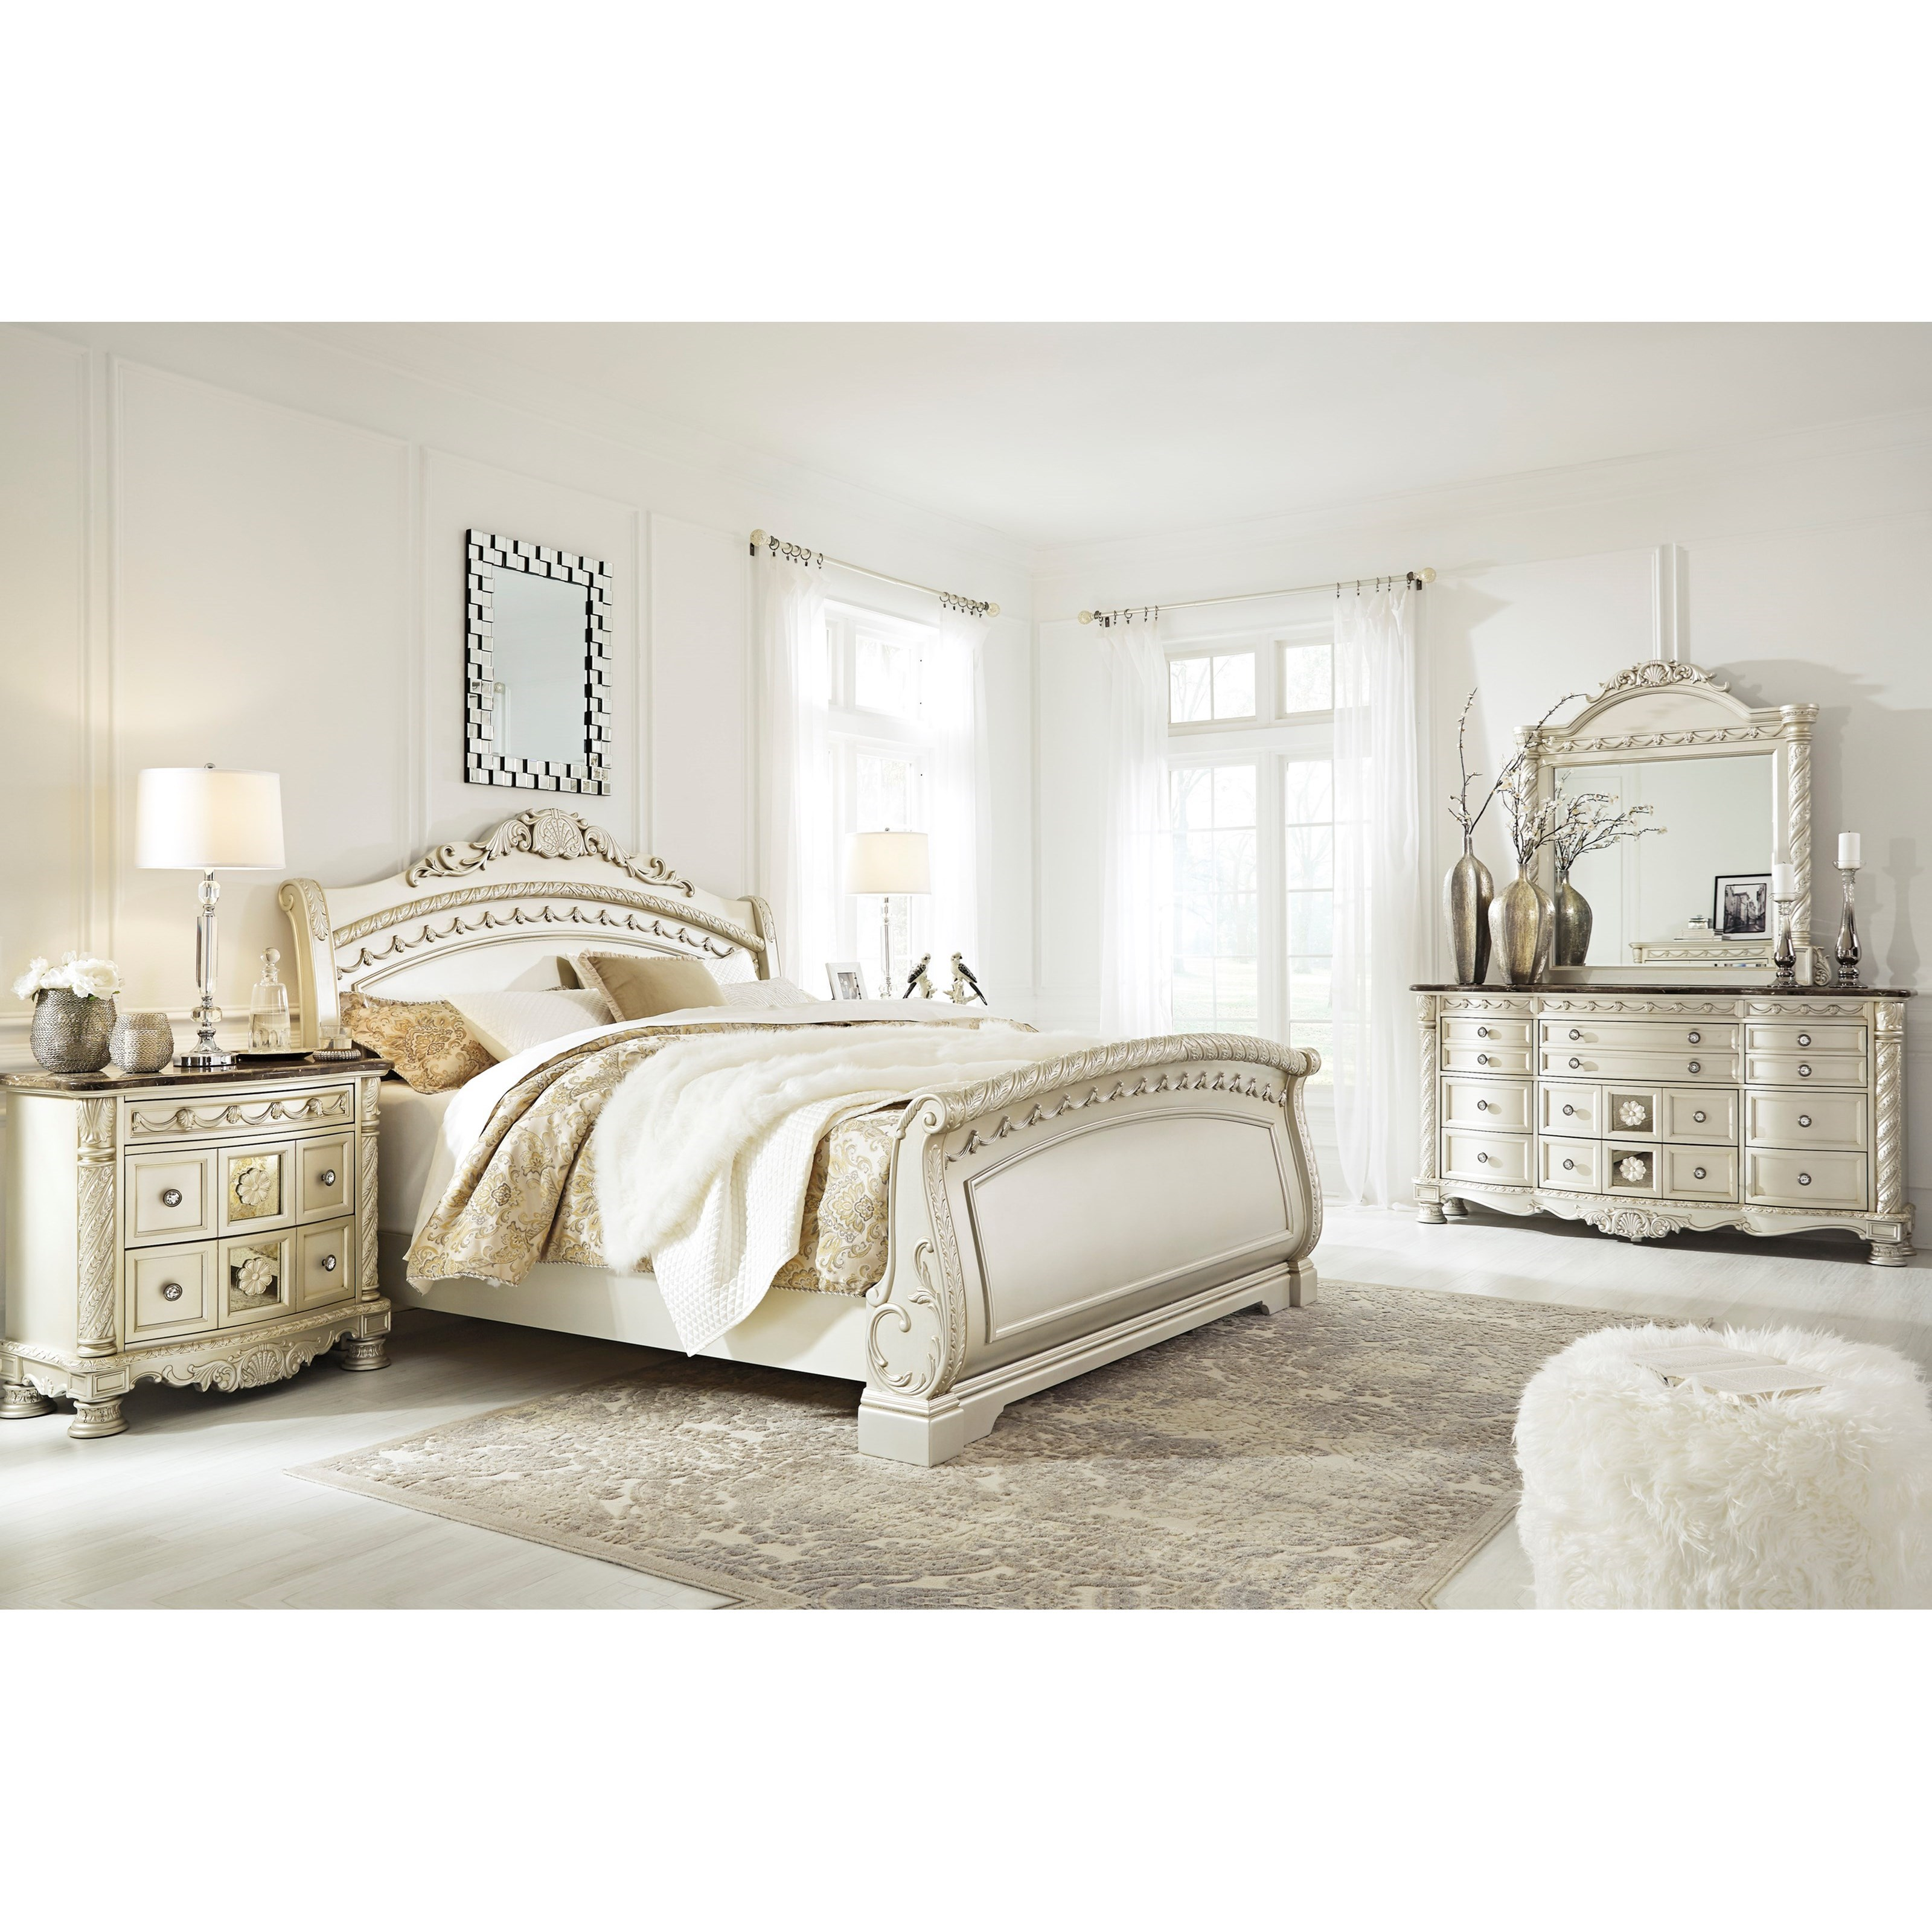 Signature Design by Ashley Cassimore Queen Bedroom Group - Item Number: B750 Q Bedroom Group 2